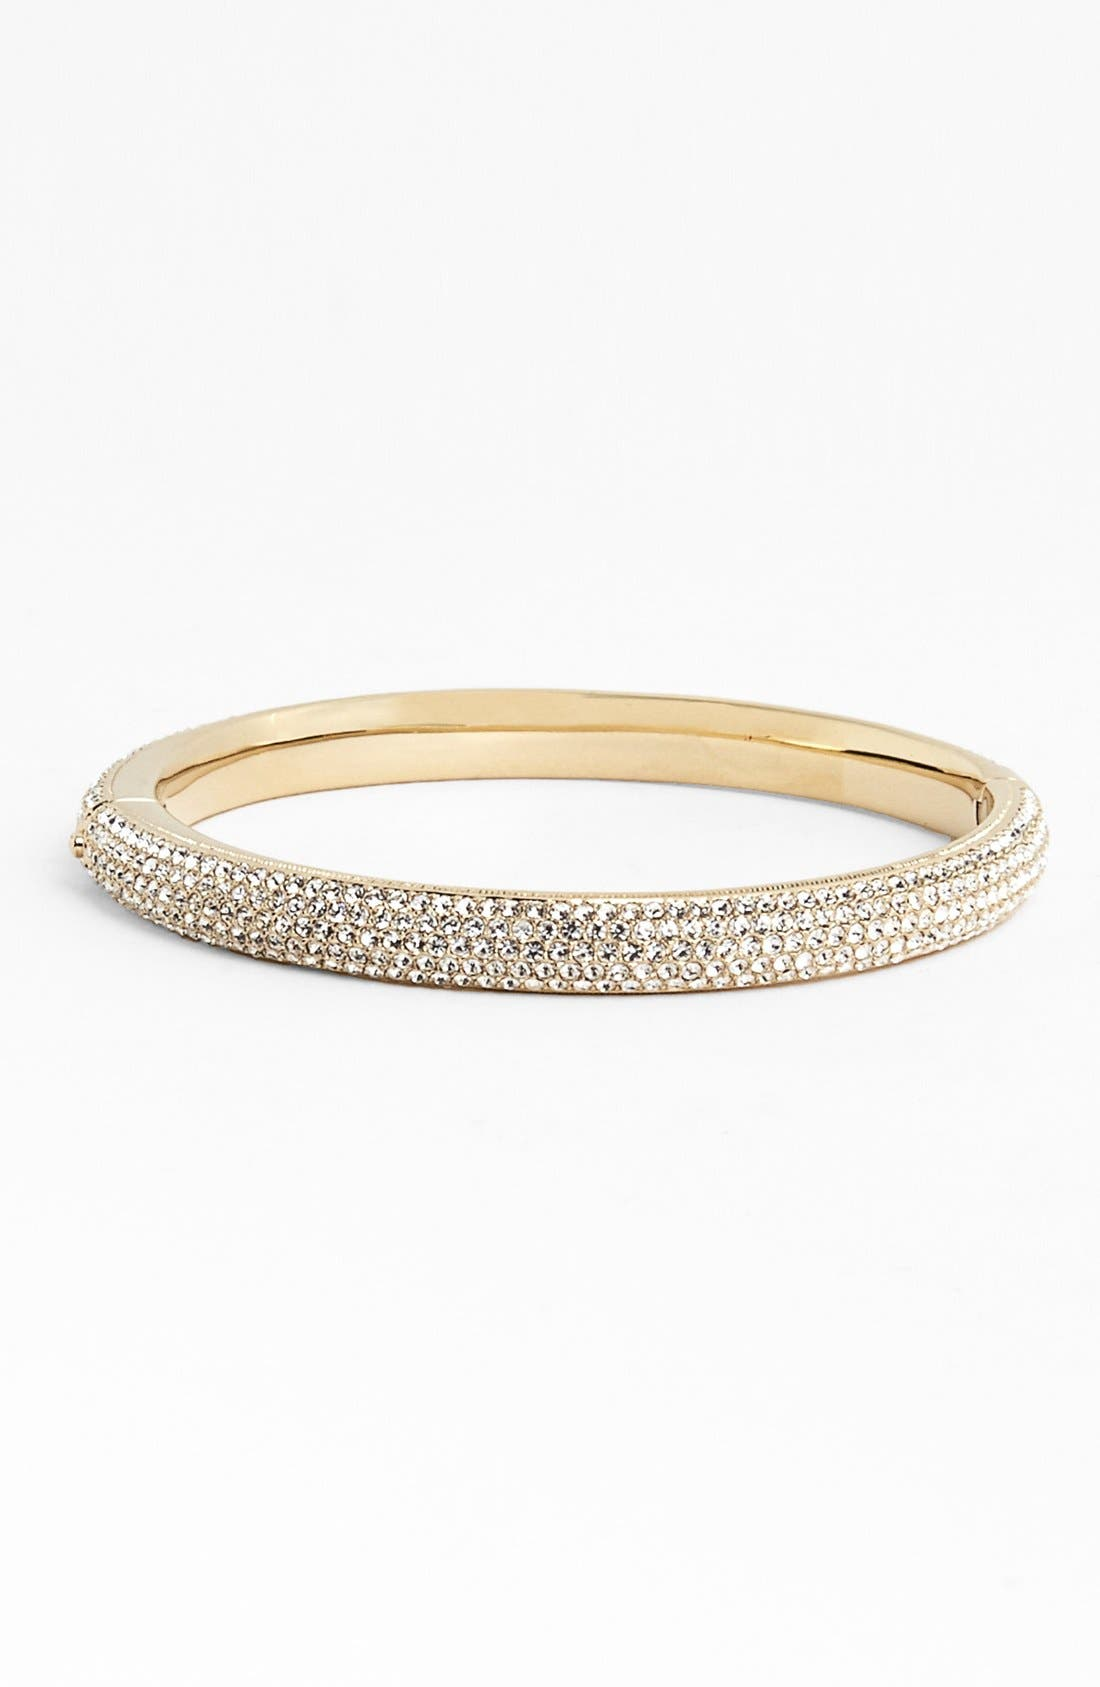 tennis bracelets thick products bracelet cz bangle bangles ugleam gold